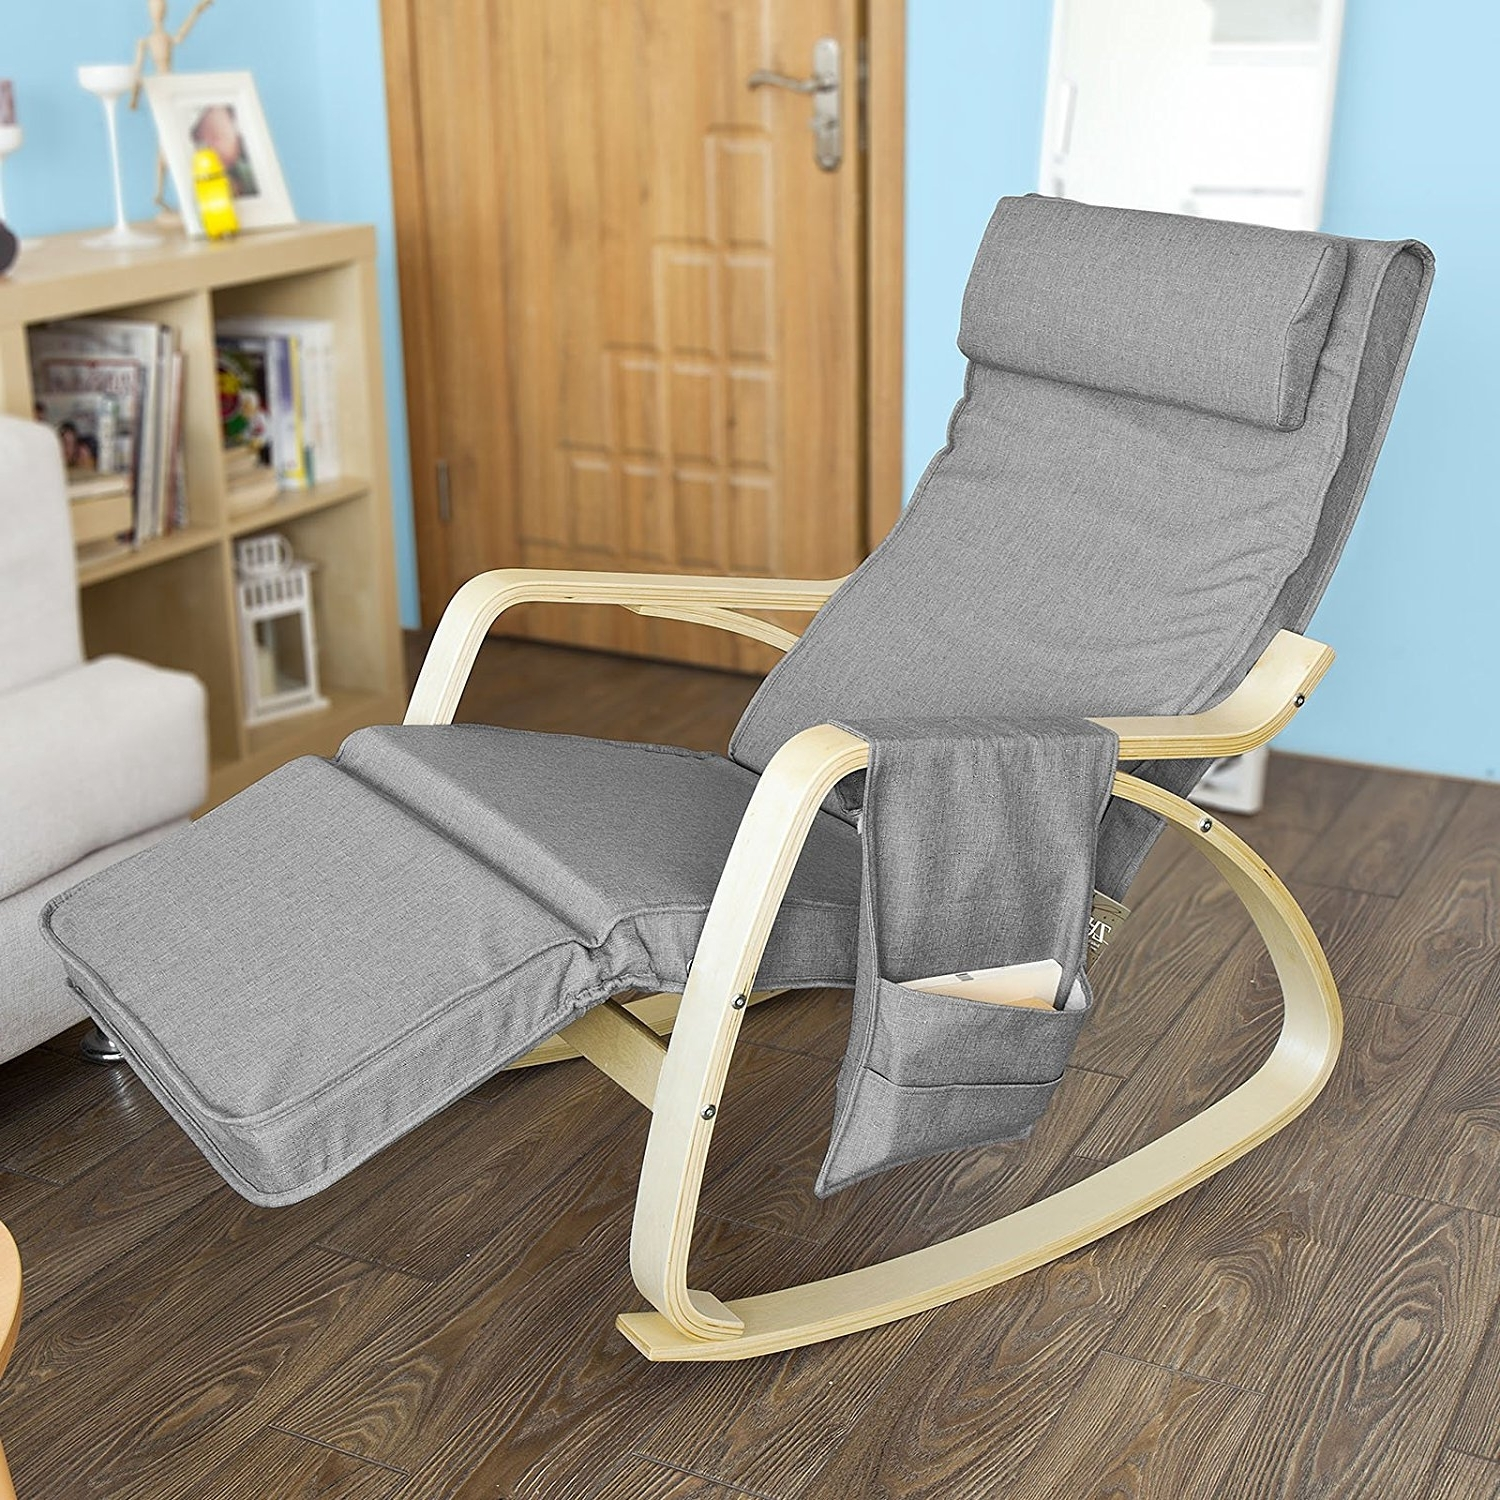 Most Recent Rock Away Back Pain Using Rocking Chairs/inversiontableplus With Regard To Rocking Chairs With Footrest (View 6 of 20)